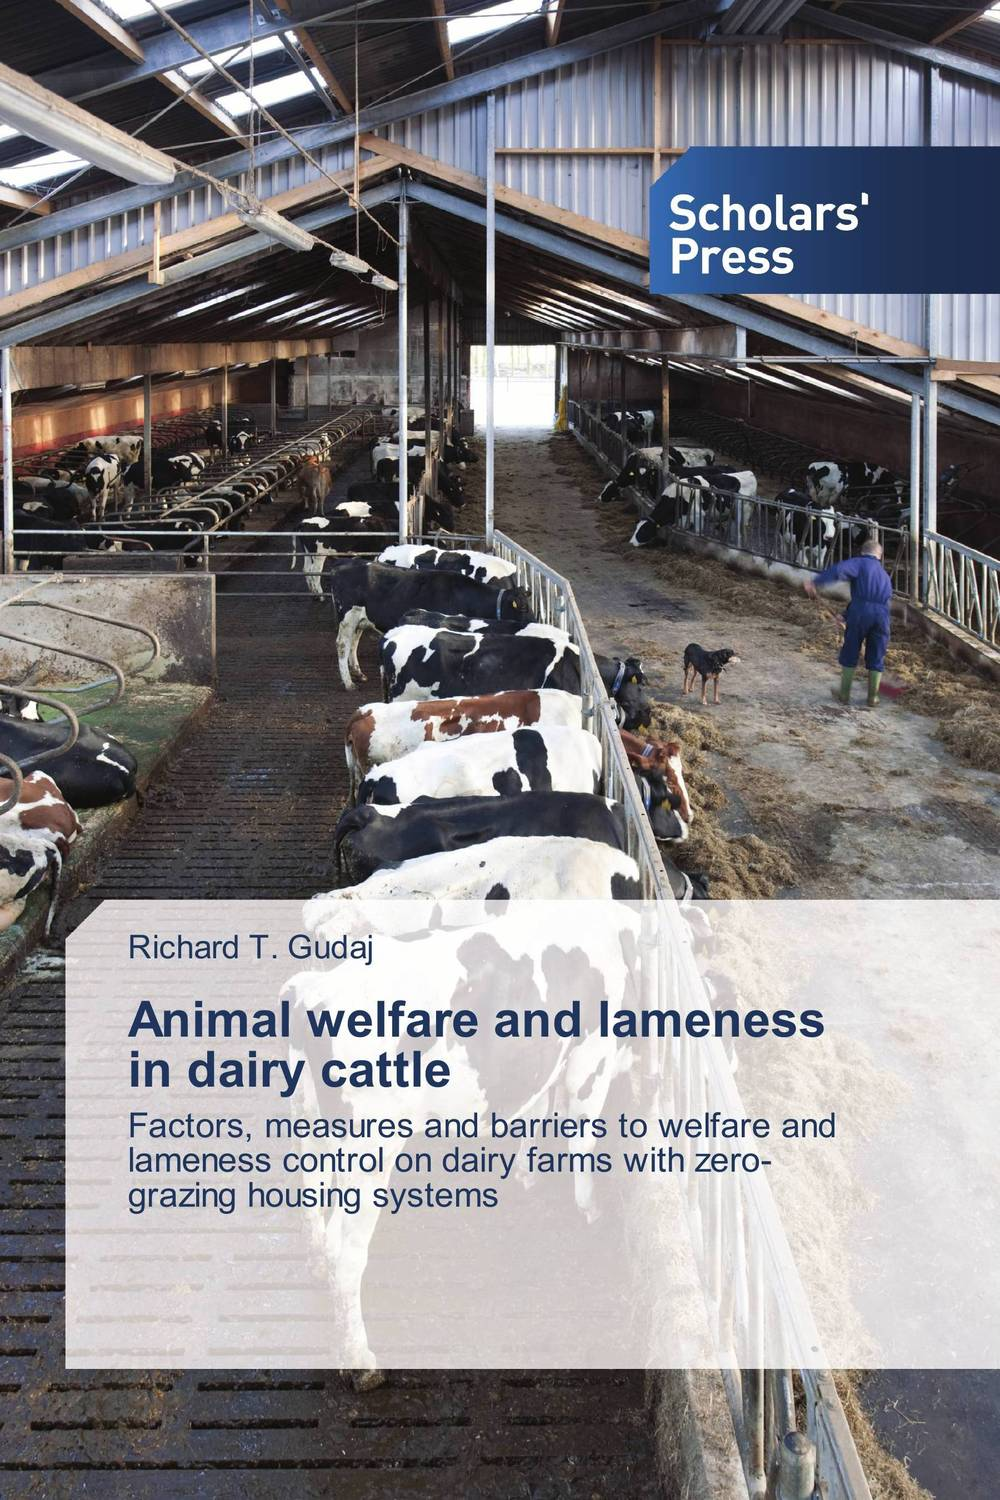 Animal welfare and lameness in dairy cattle current fertility status in cattle of mini dairy farms